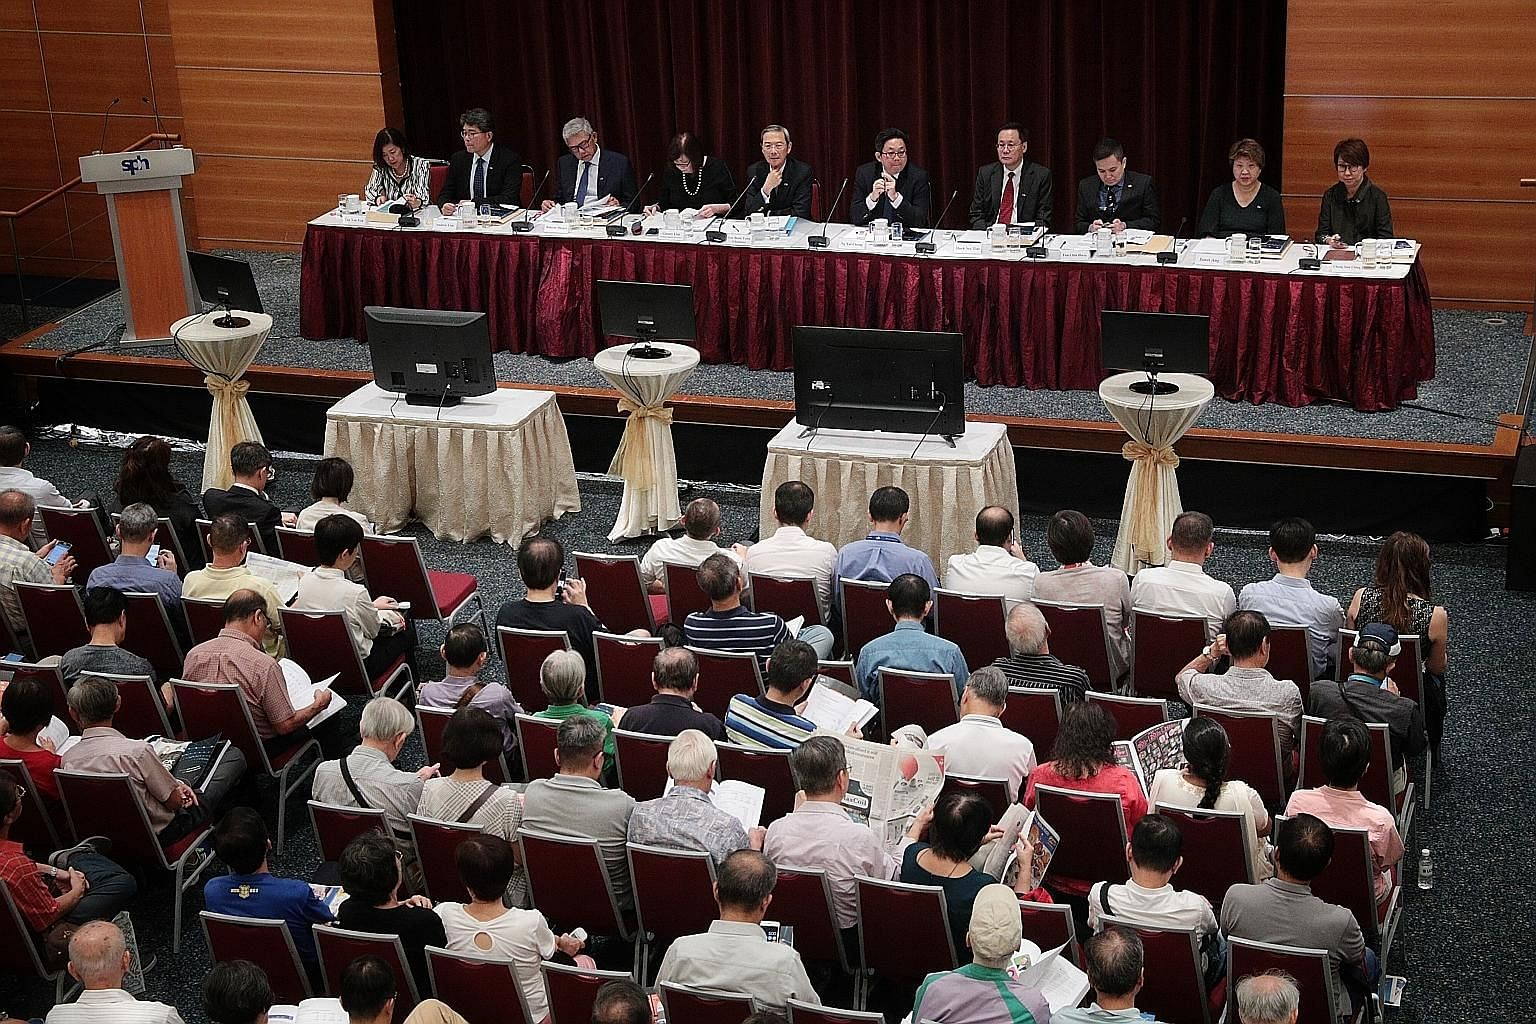 The Singapore Press Holdings' annual general meeting, which lasted over two hours and was attended by some 400 shareholders, saw the company's media business taking the spotlight as investors asked if slides in print advertisement and circulation rev